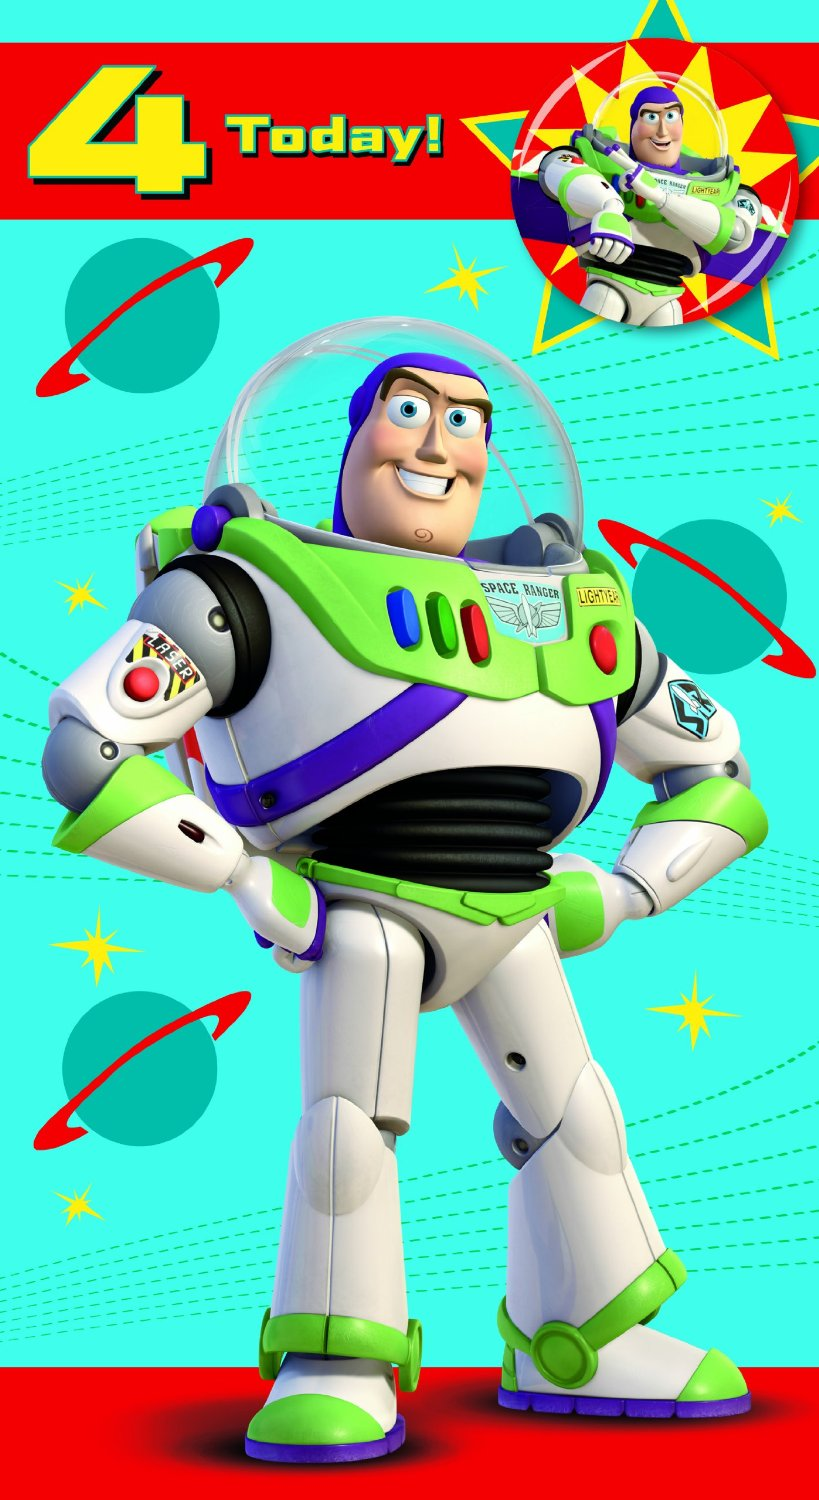 Edad De Toy Story 4 Buzz Lightyear Tarjeta De Cumplea oscompleto – Buzz Lightyear Birthday Card